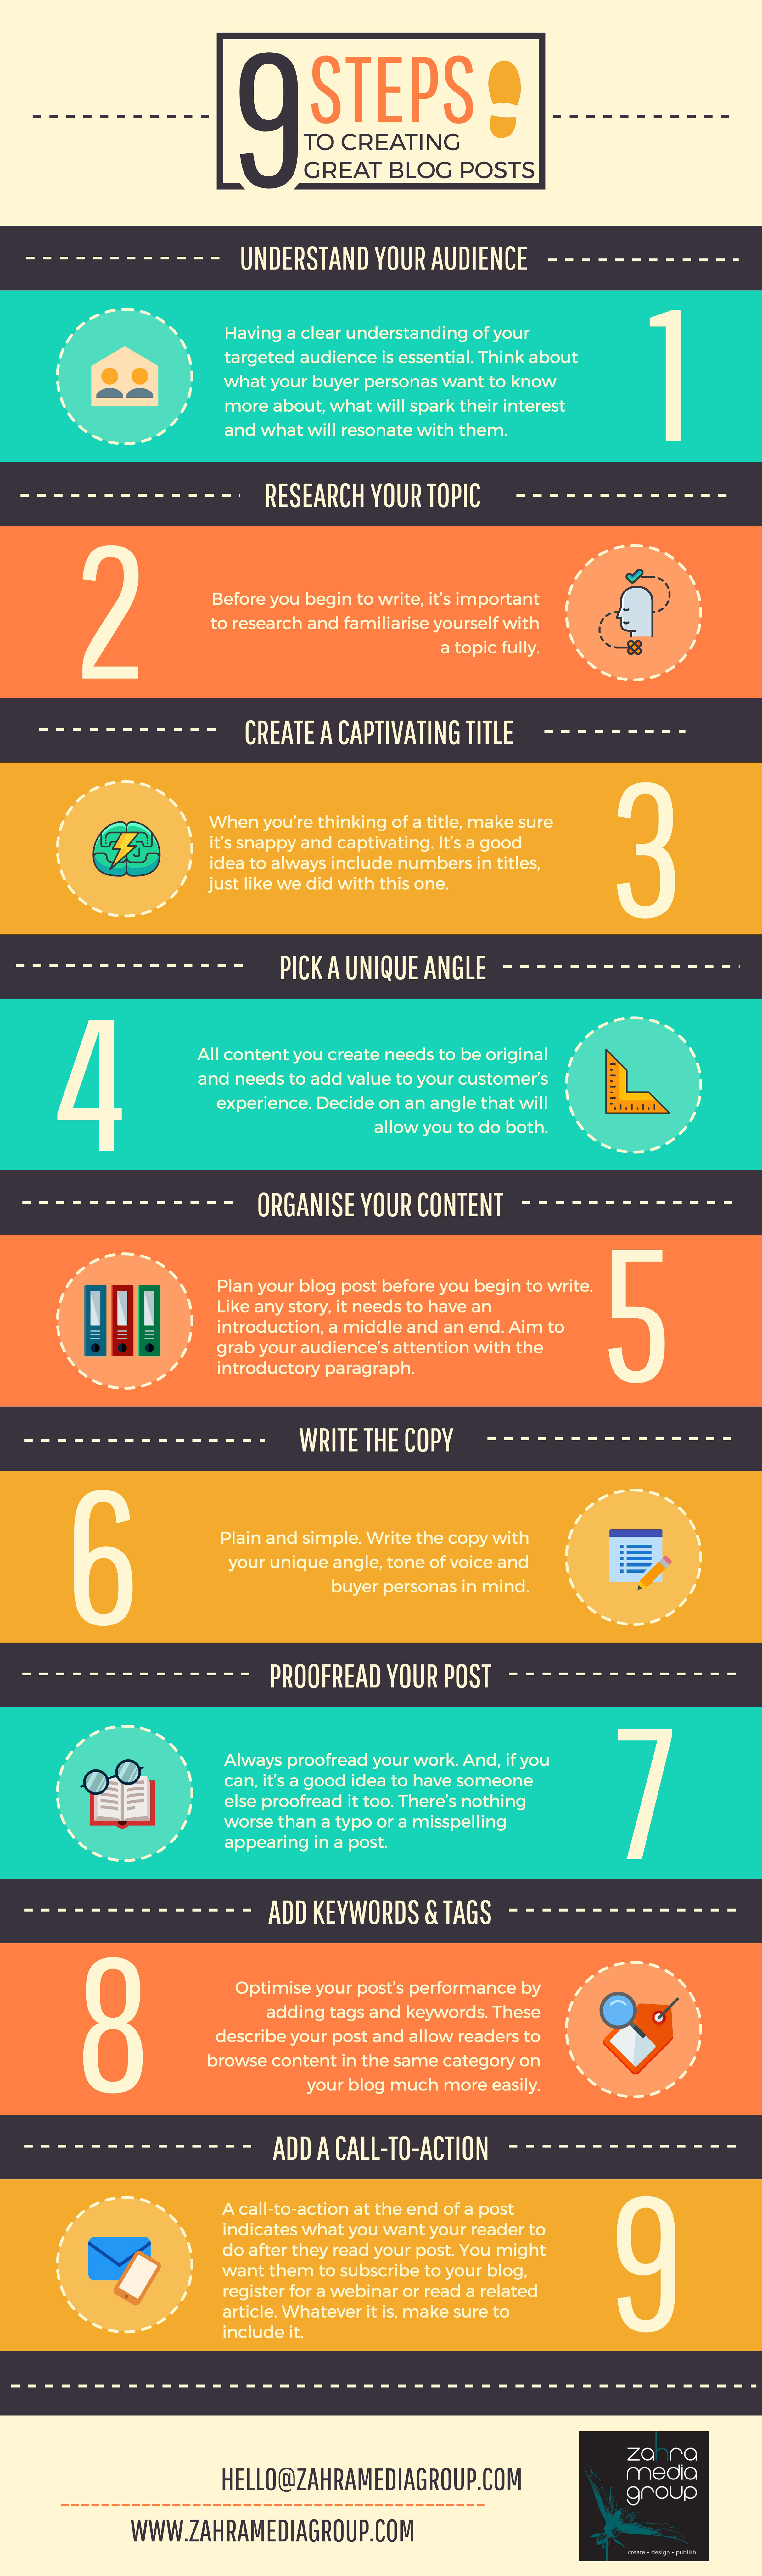 9 steps to create a great blog post infographic